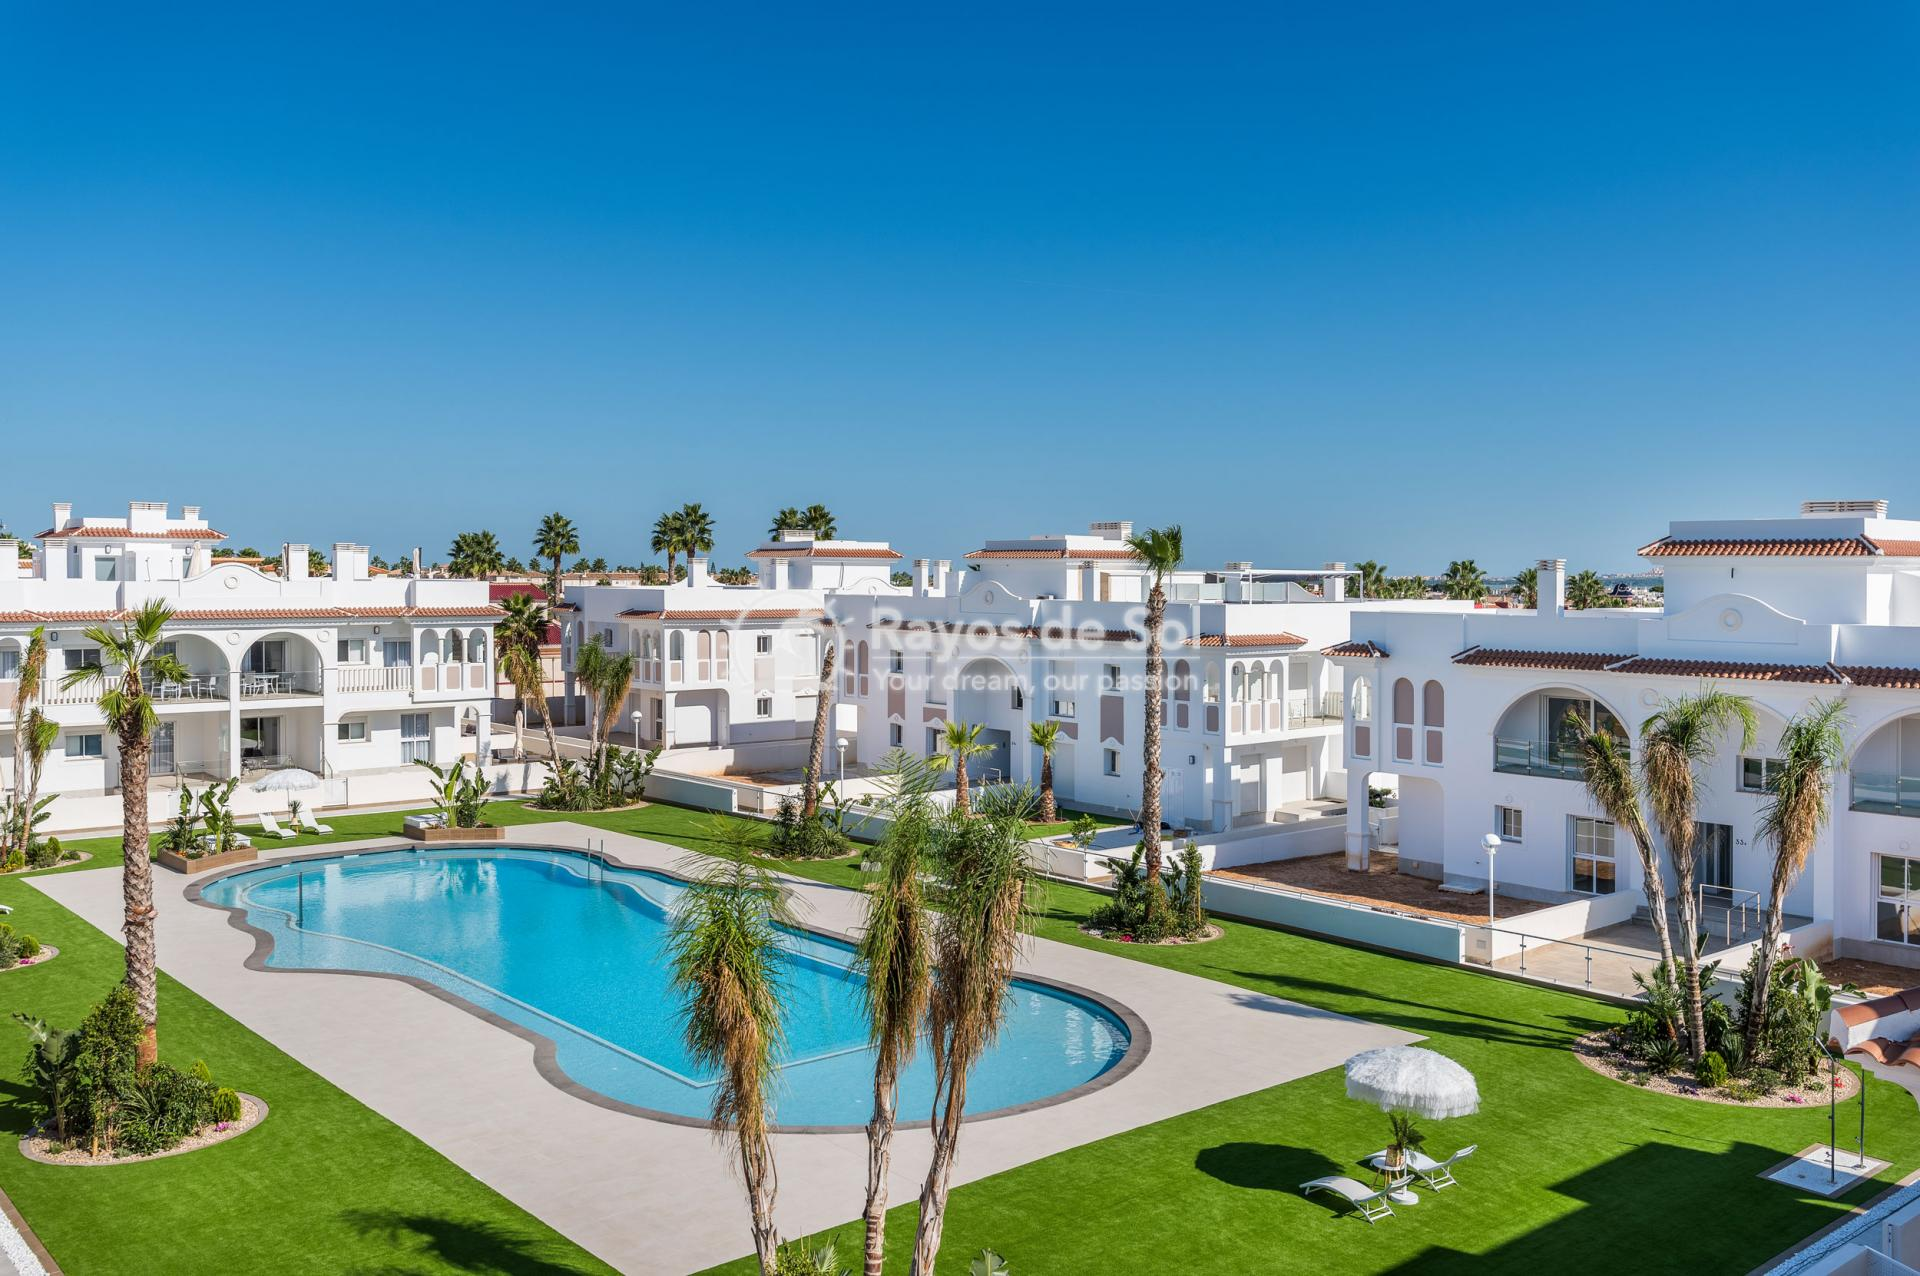 Appartement  in Doña Pepa, Quesada, Costa Blanca (Allegra-Alba-BG2) - 16